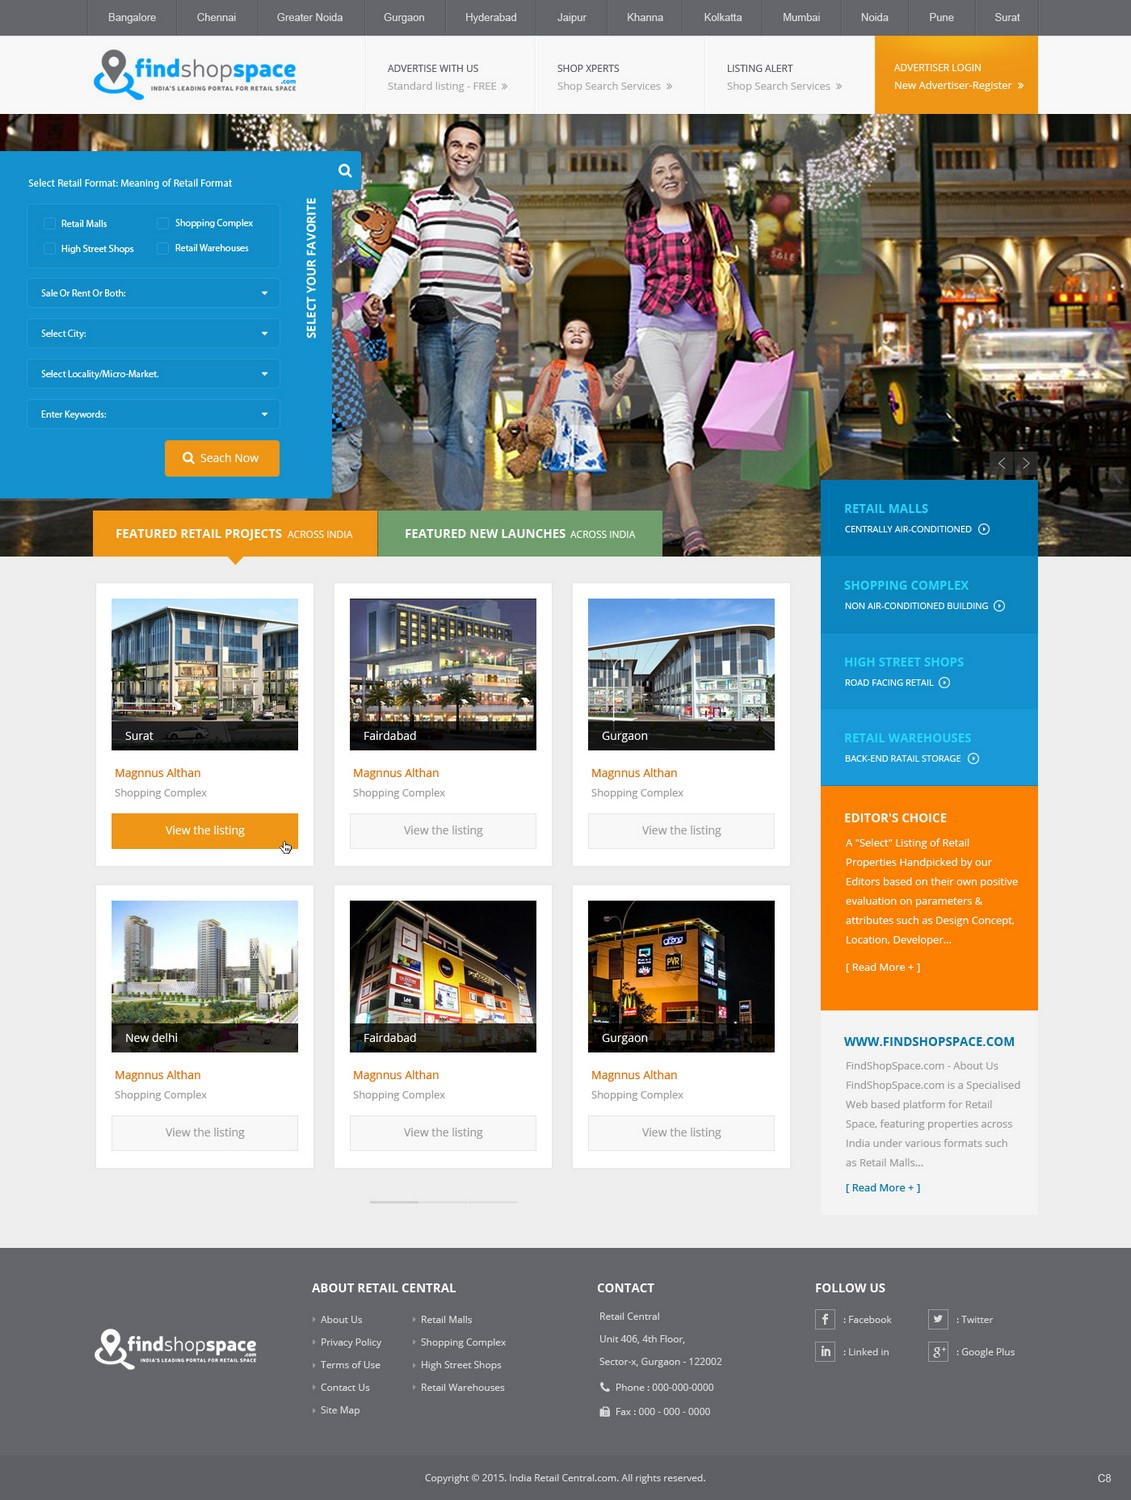 Feminine Colorful Advertising Web Design For A Company By Pb Design 5193201